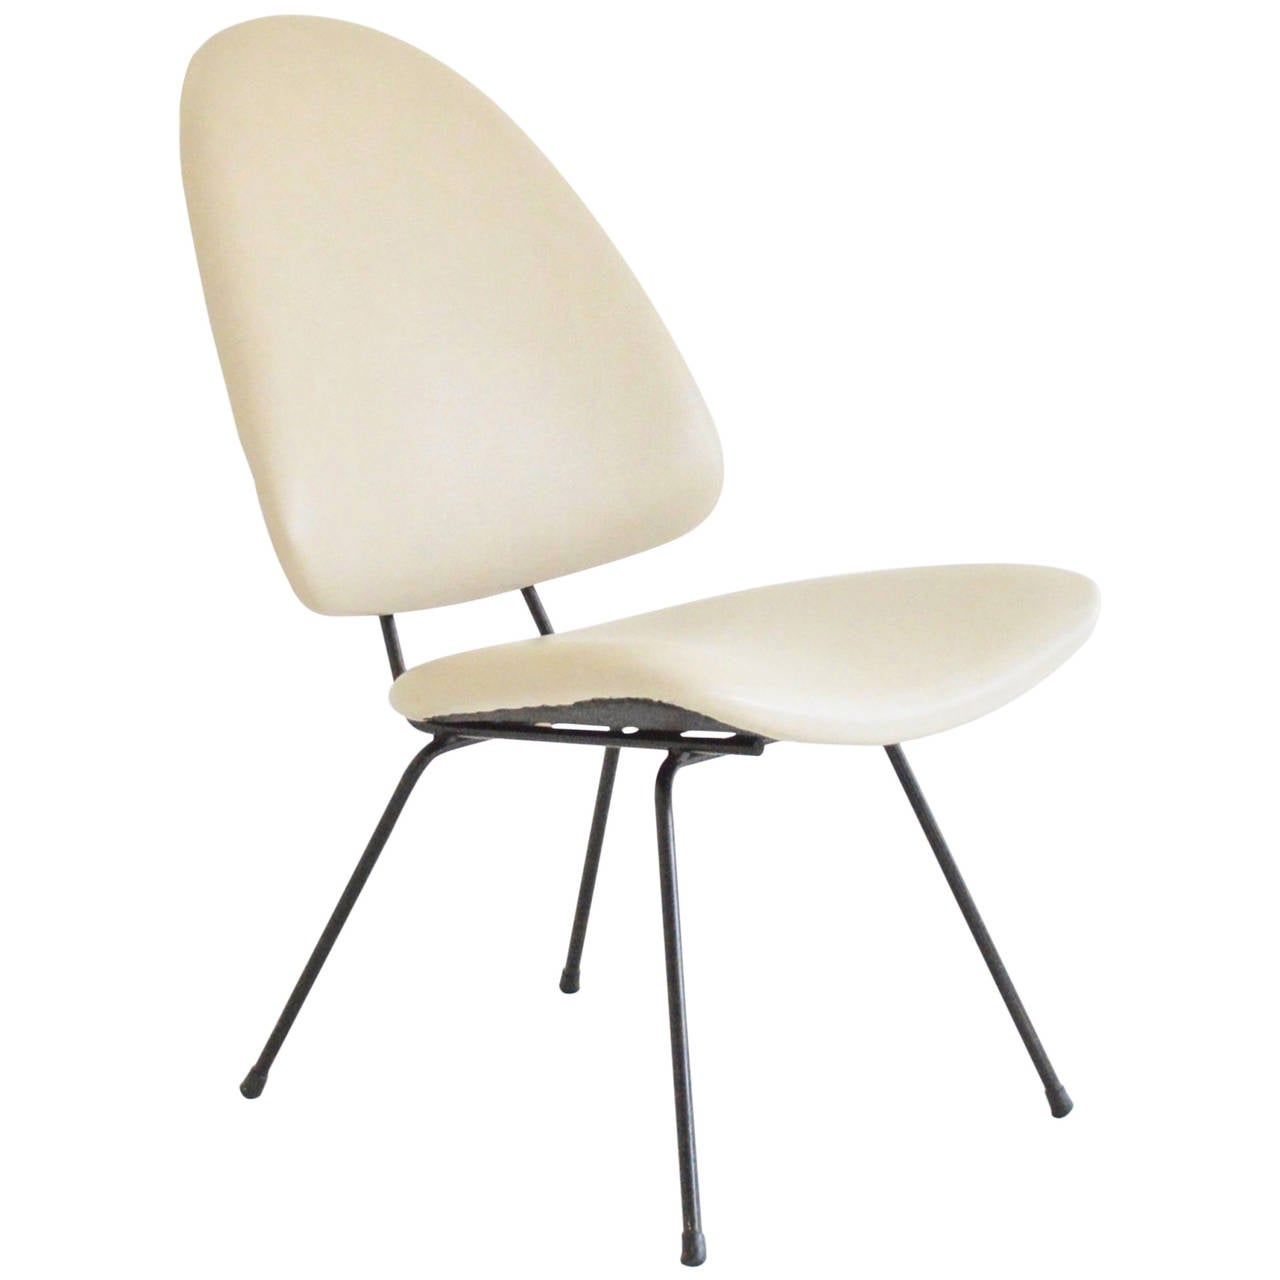 Oval lounge chair - Gispen No 60 Oval Lounge Chair 1